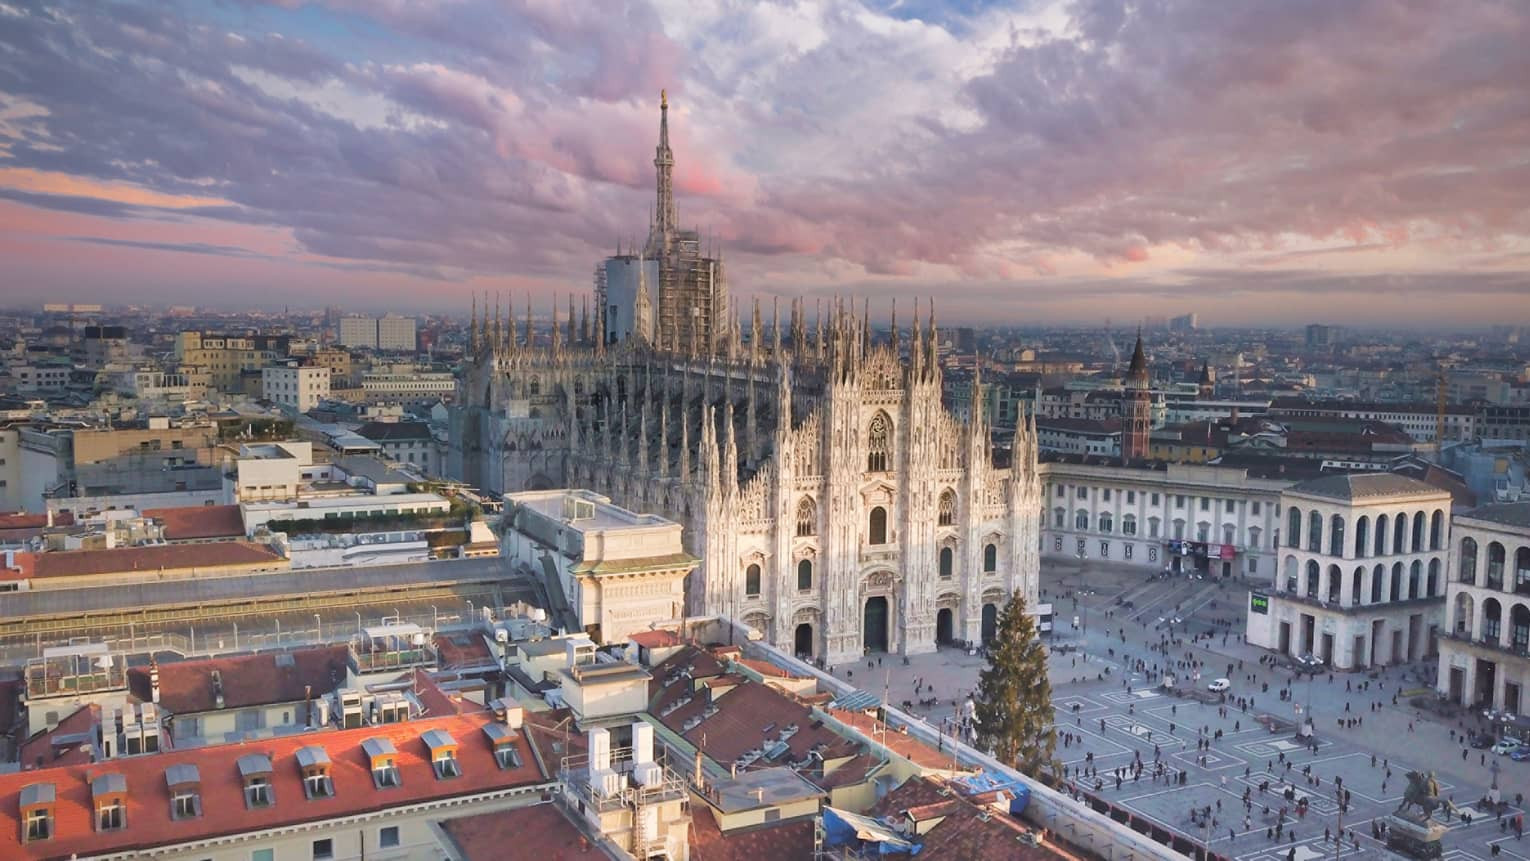 Oak View Group and Live Nation partner to deliver Milan Cortina 2026 ice hockey venue